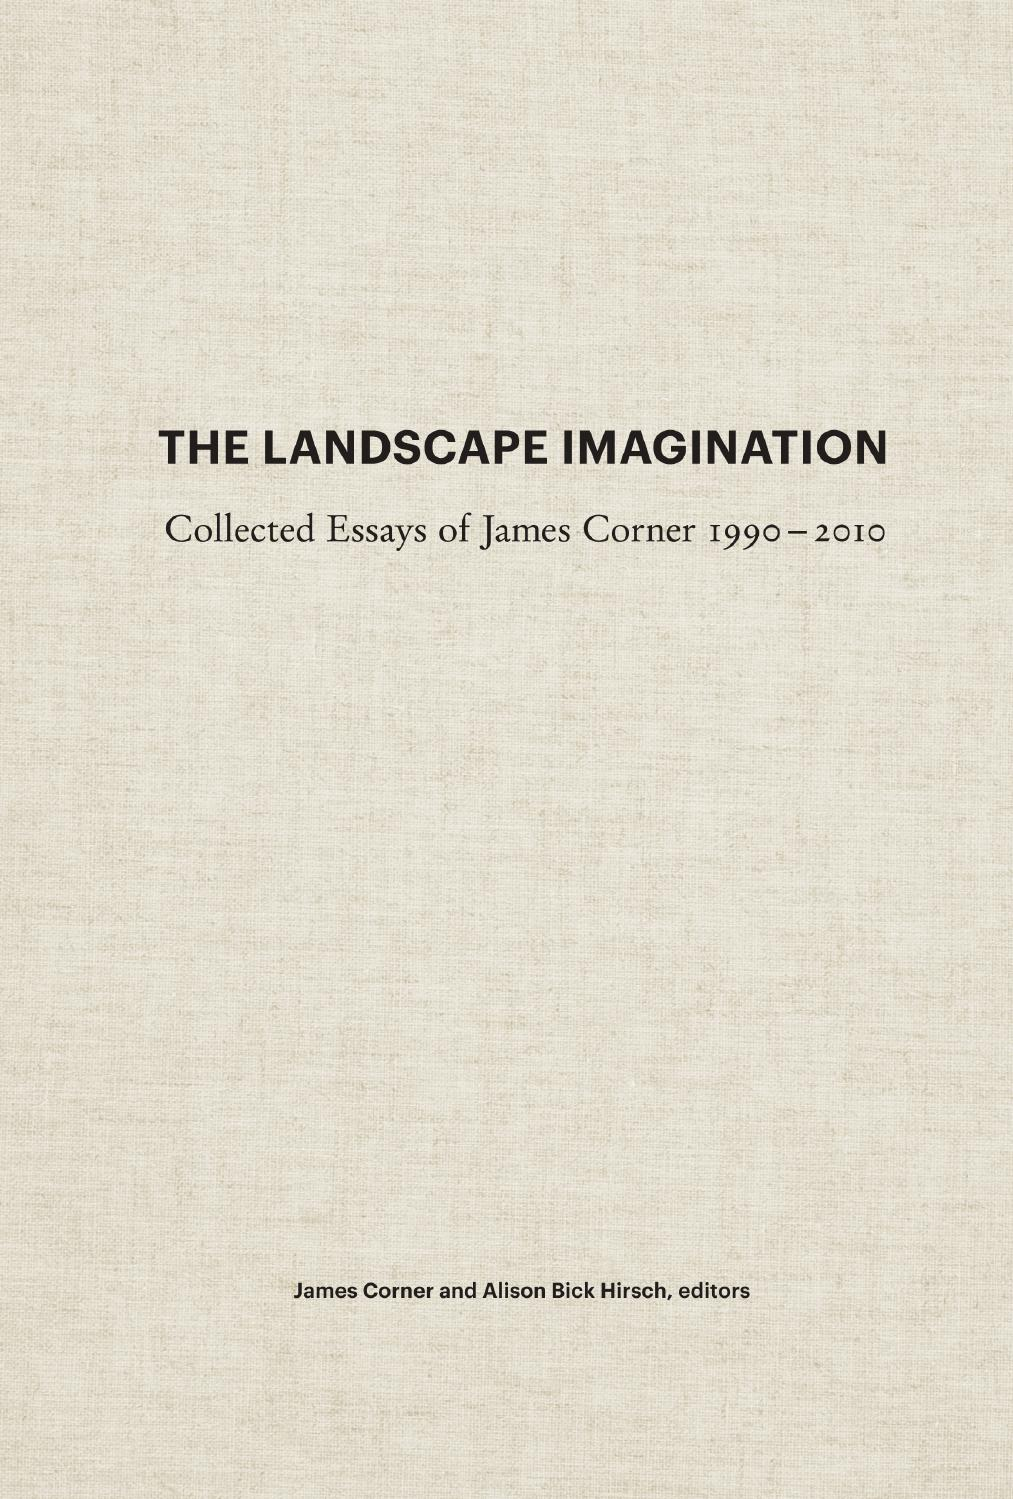 landscape imagination by princeton architectural press issuu